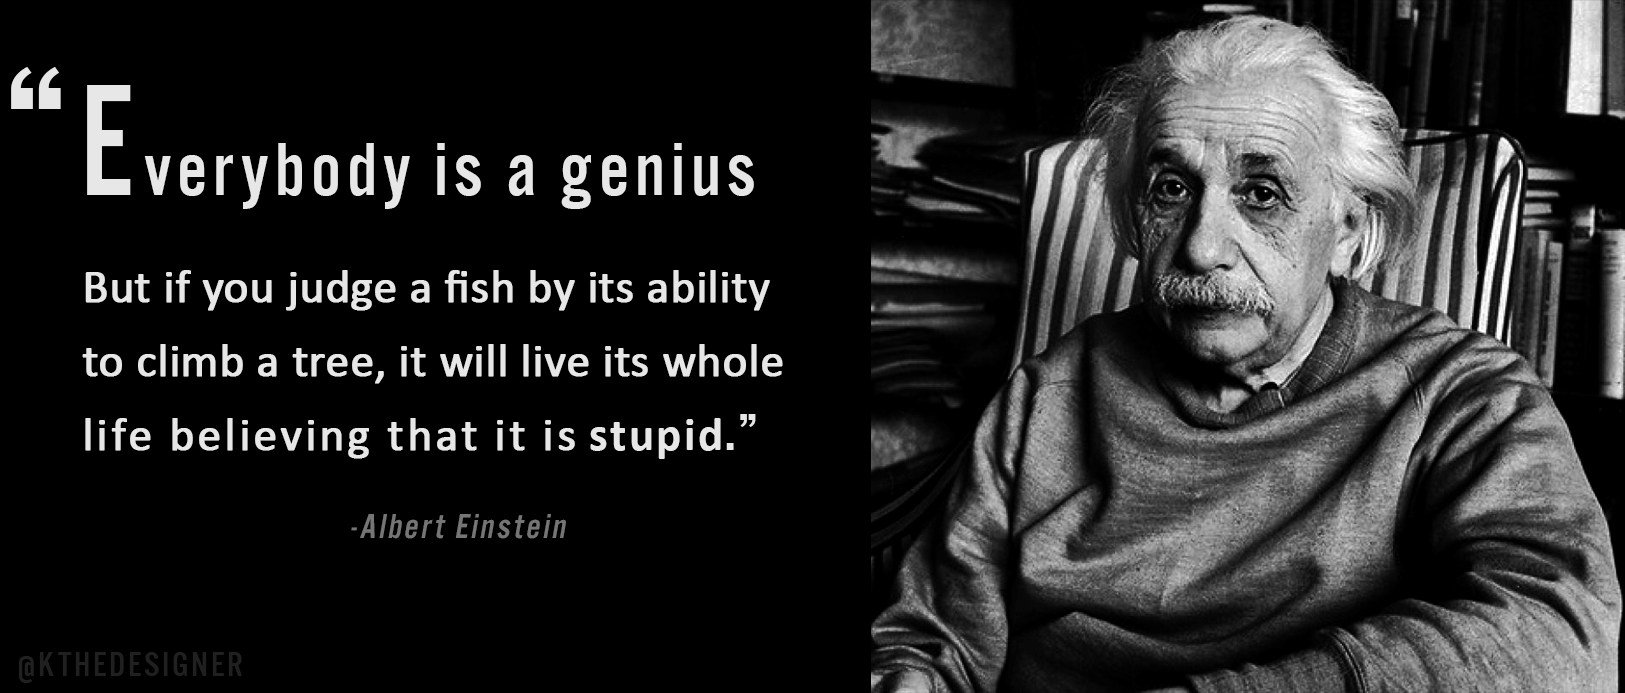 """Everybody is a genius. But if you judge a fish by its ability to climb a tree, it will live its whole life believing that it is stupid."" — Albert Einstein quotes [1625 x 693]"